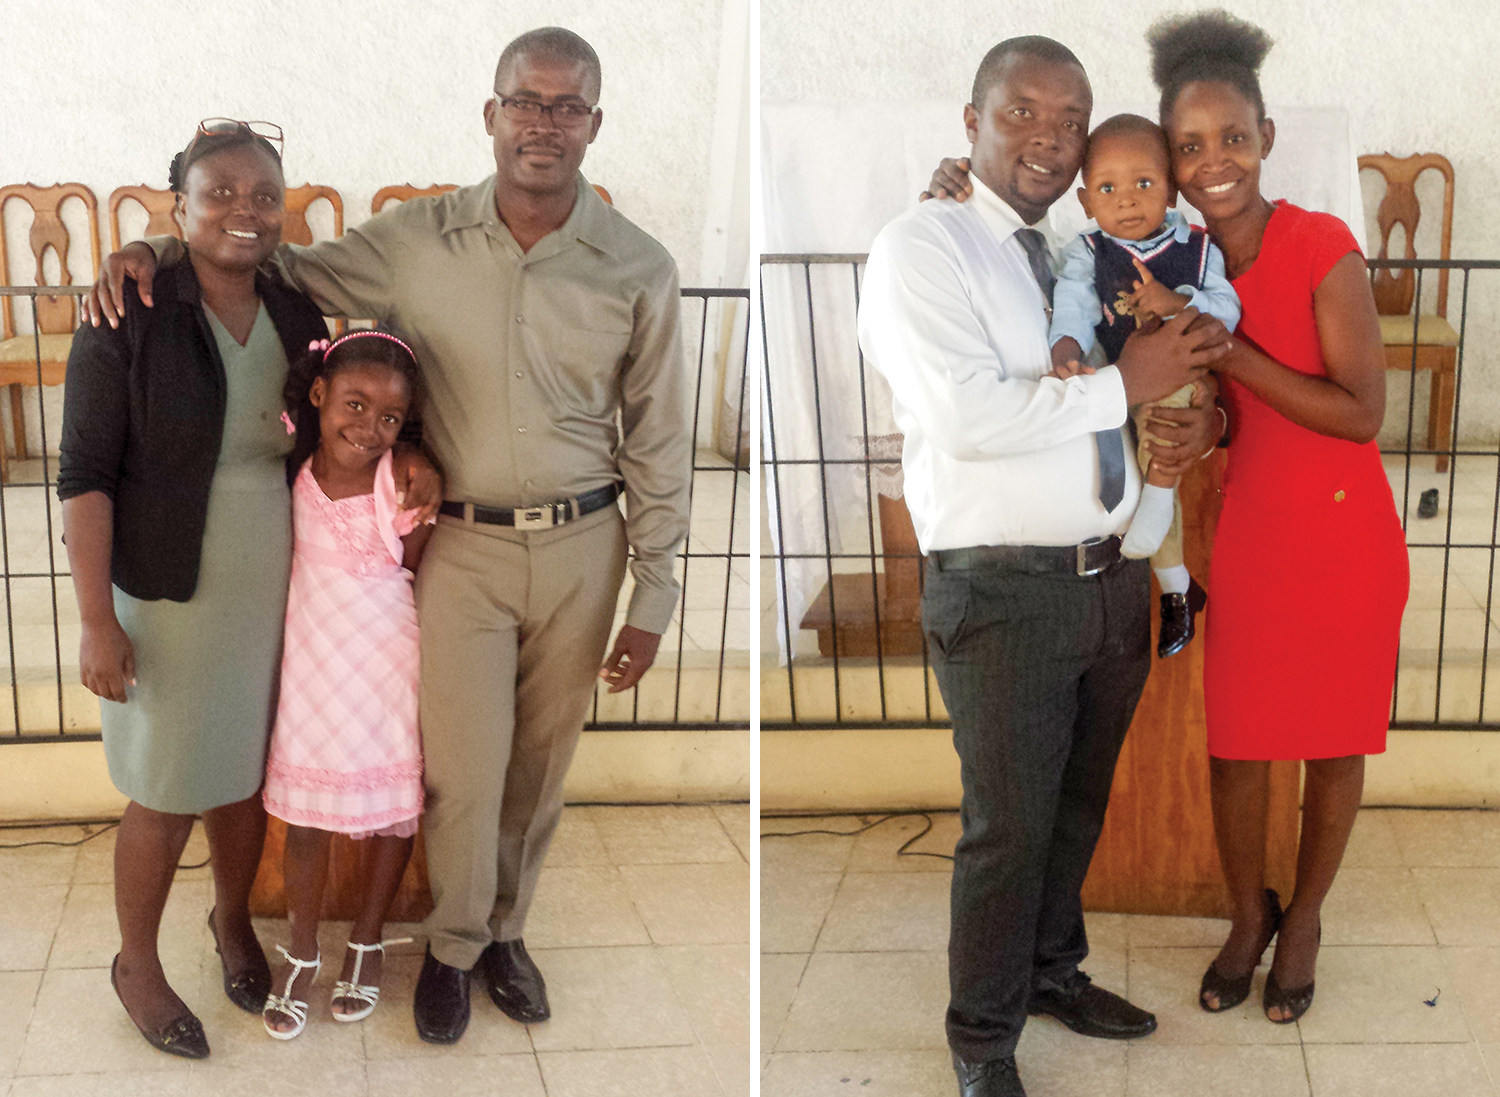 Left: The Estinfil family: Lycée, Shelaica and Julia attend church together, and see Jesus as the hope for Haiti. Right: The Edmond family: Robenson, Rooby and their young son Darline look forward to the day when he starts school at New Missions.